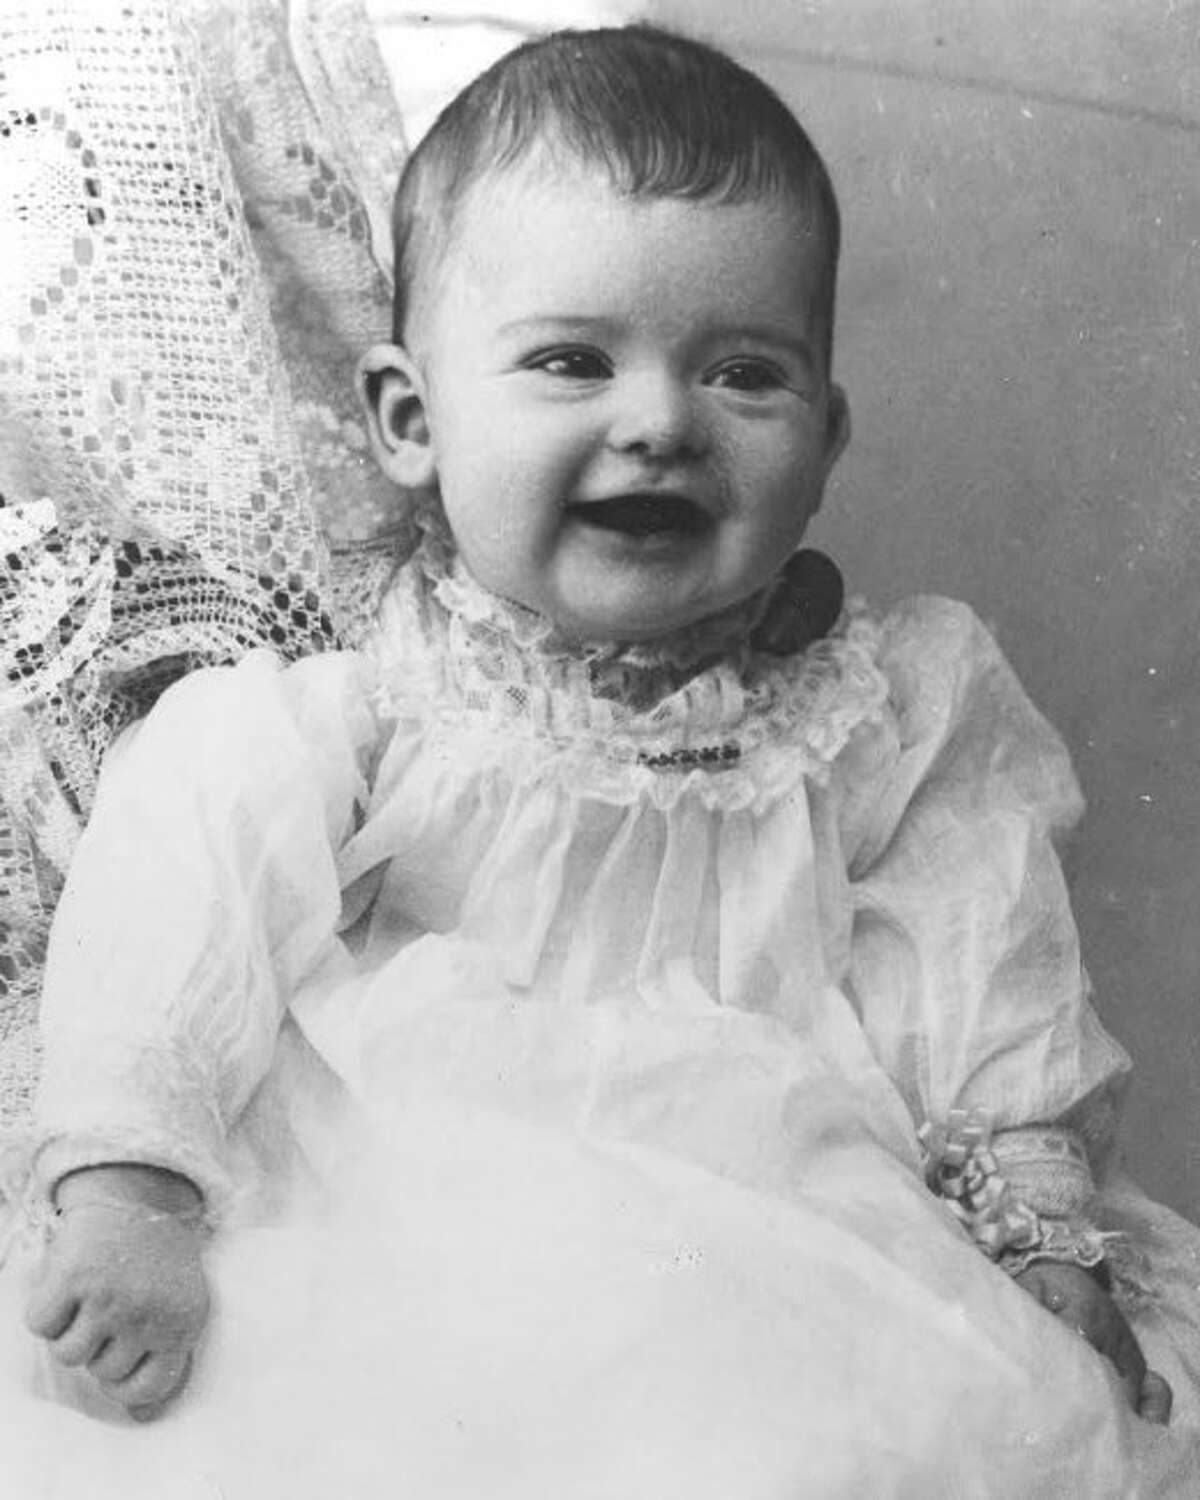 Virginia Buckley, pictured as a child in 1896 and an adult in 1923, was the only child of Manistee lumber baron, Edward Buckley.